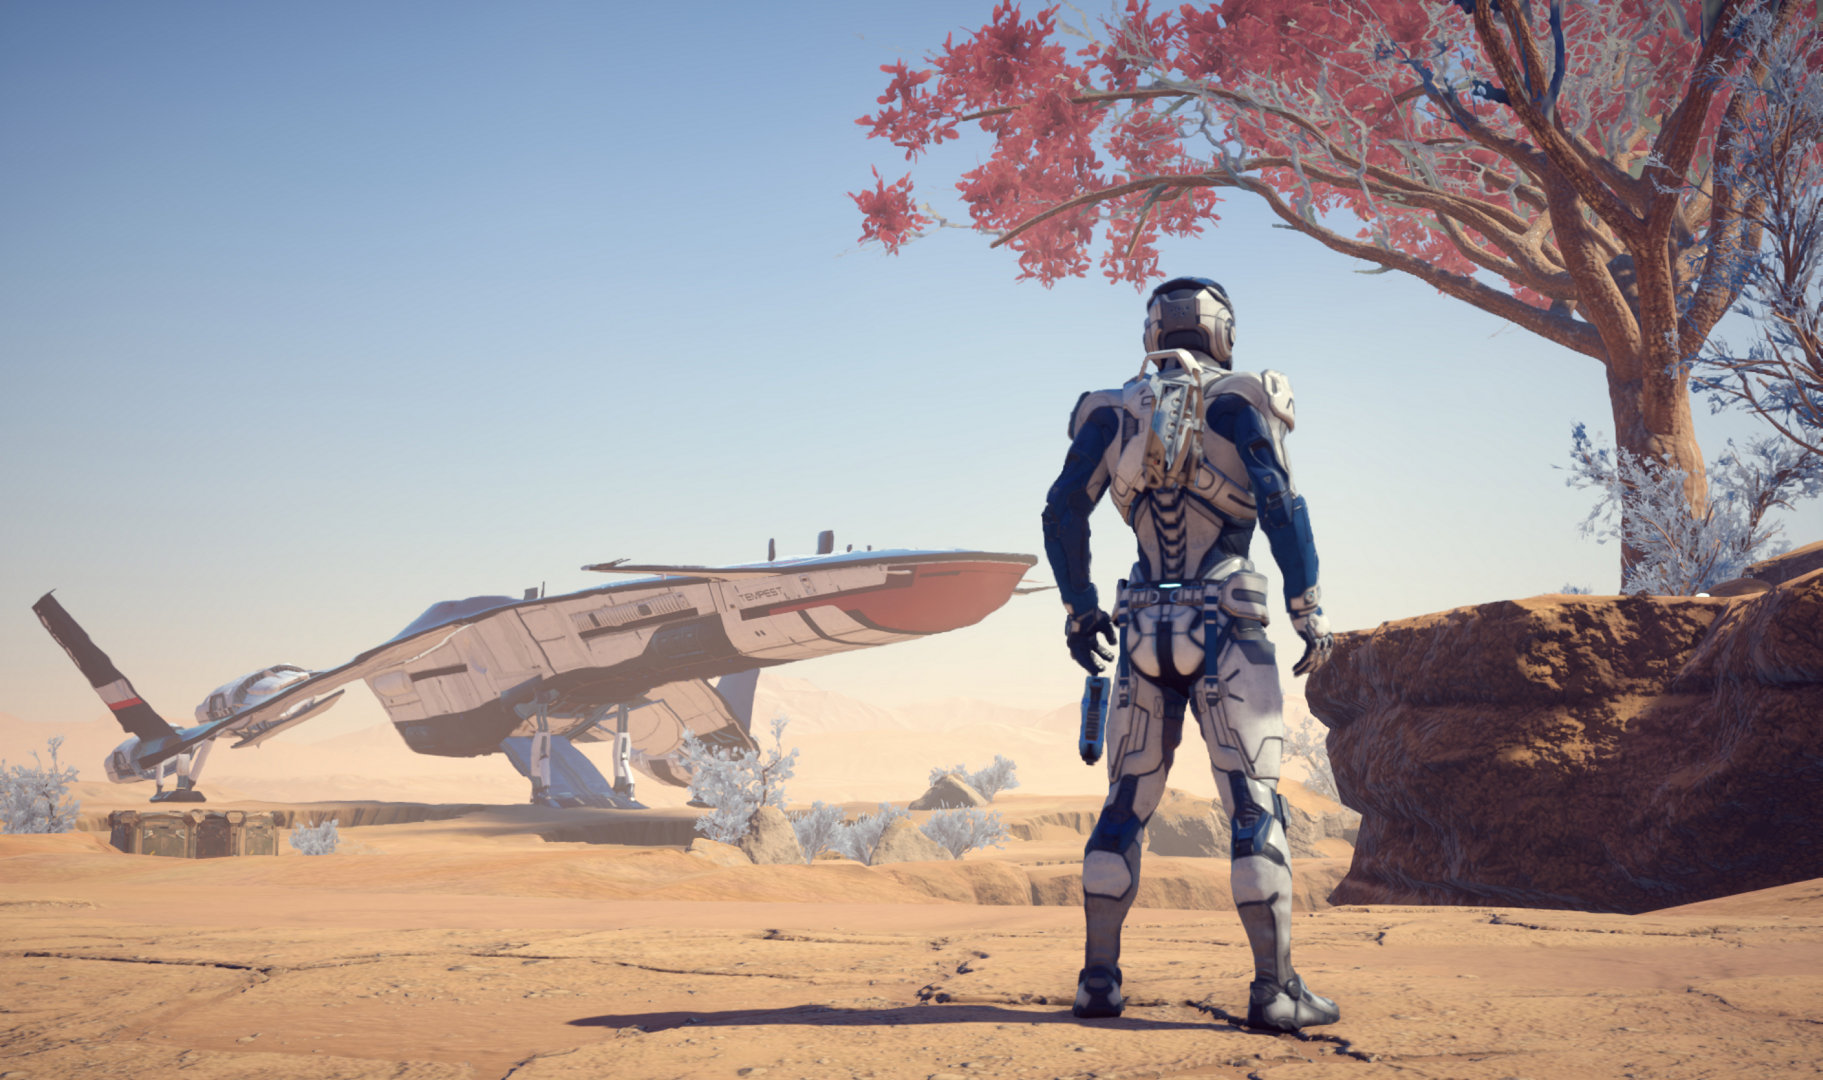 Mass-Effect-Andromeda_2016_09-07-16_001.